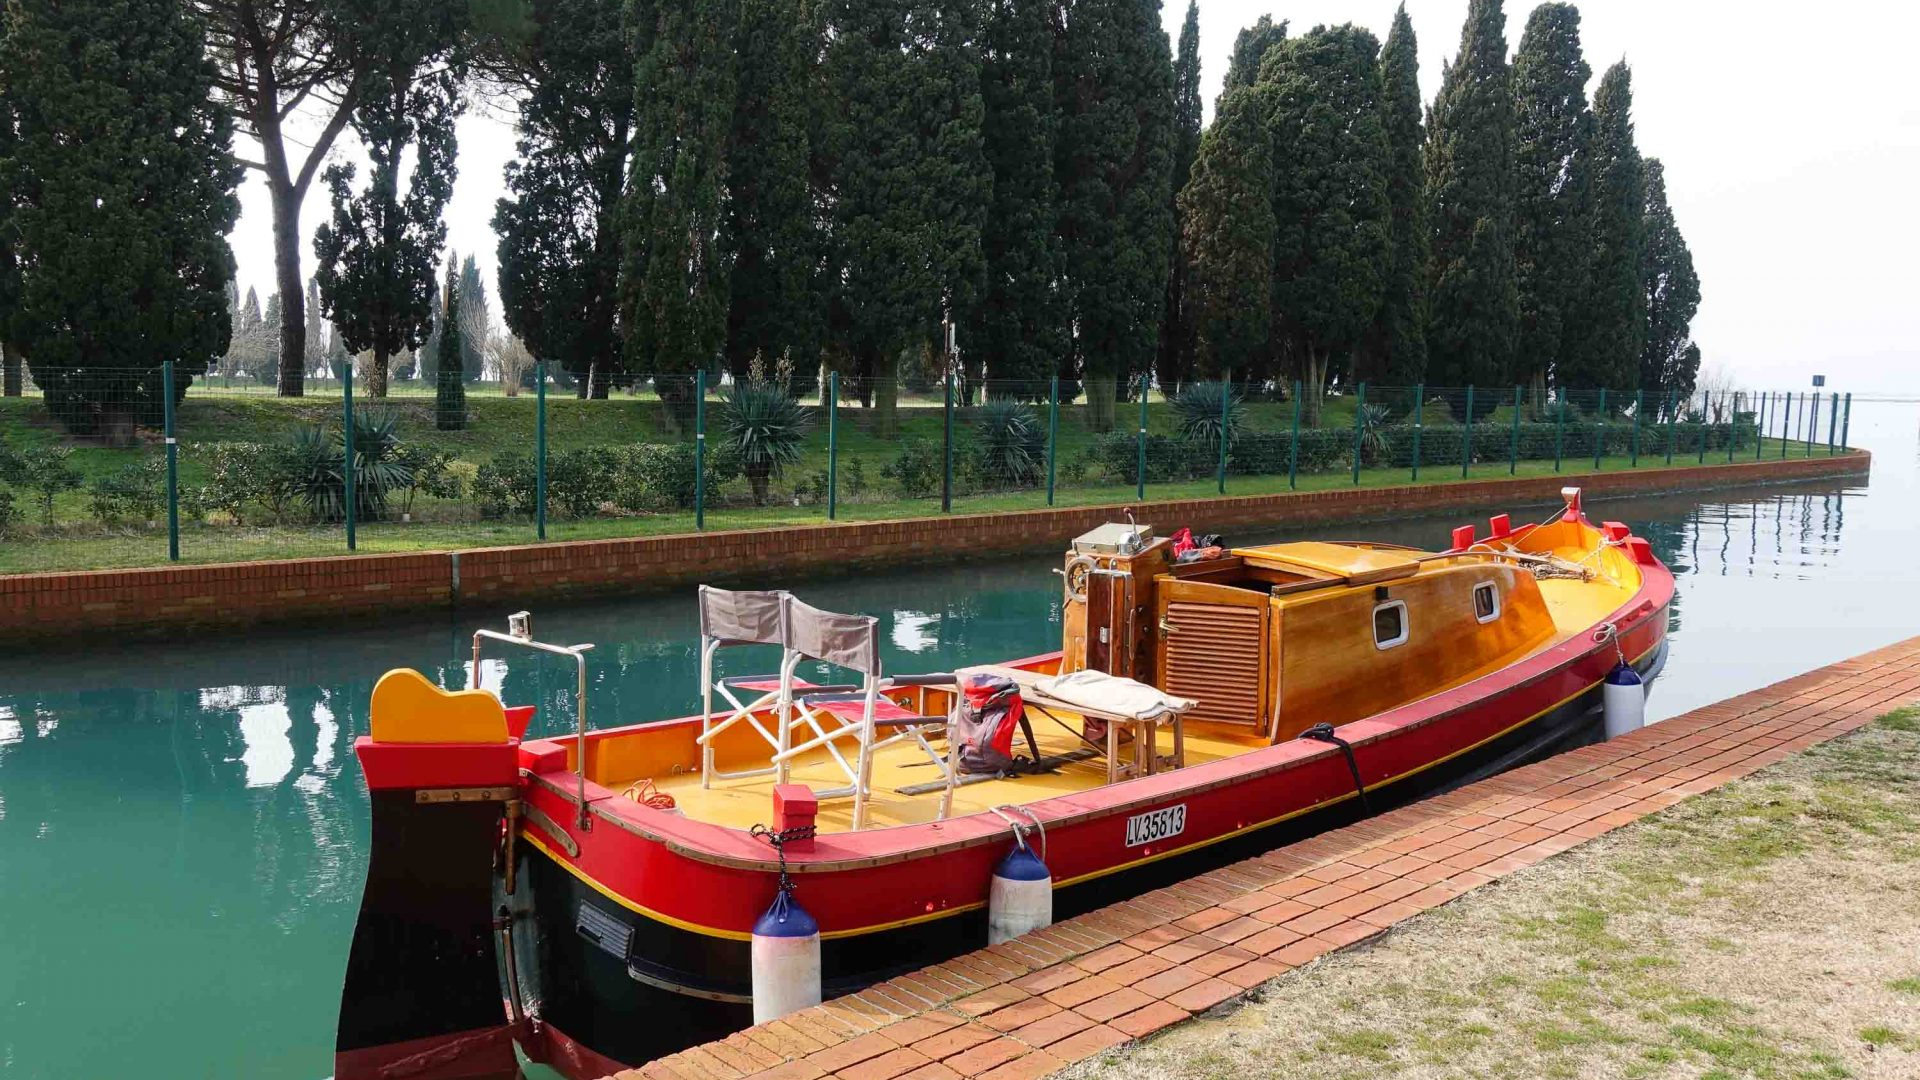 A traditional bragozzo boat moored at the monastery island of San Francesco del Deserto in Venice's lagoon.